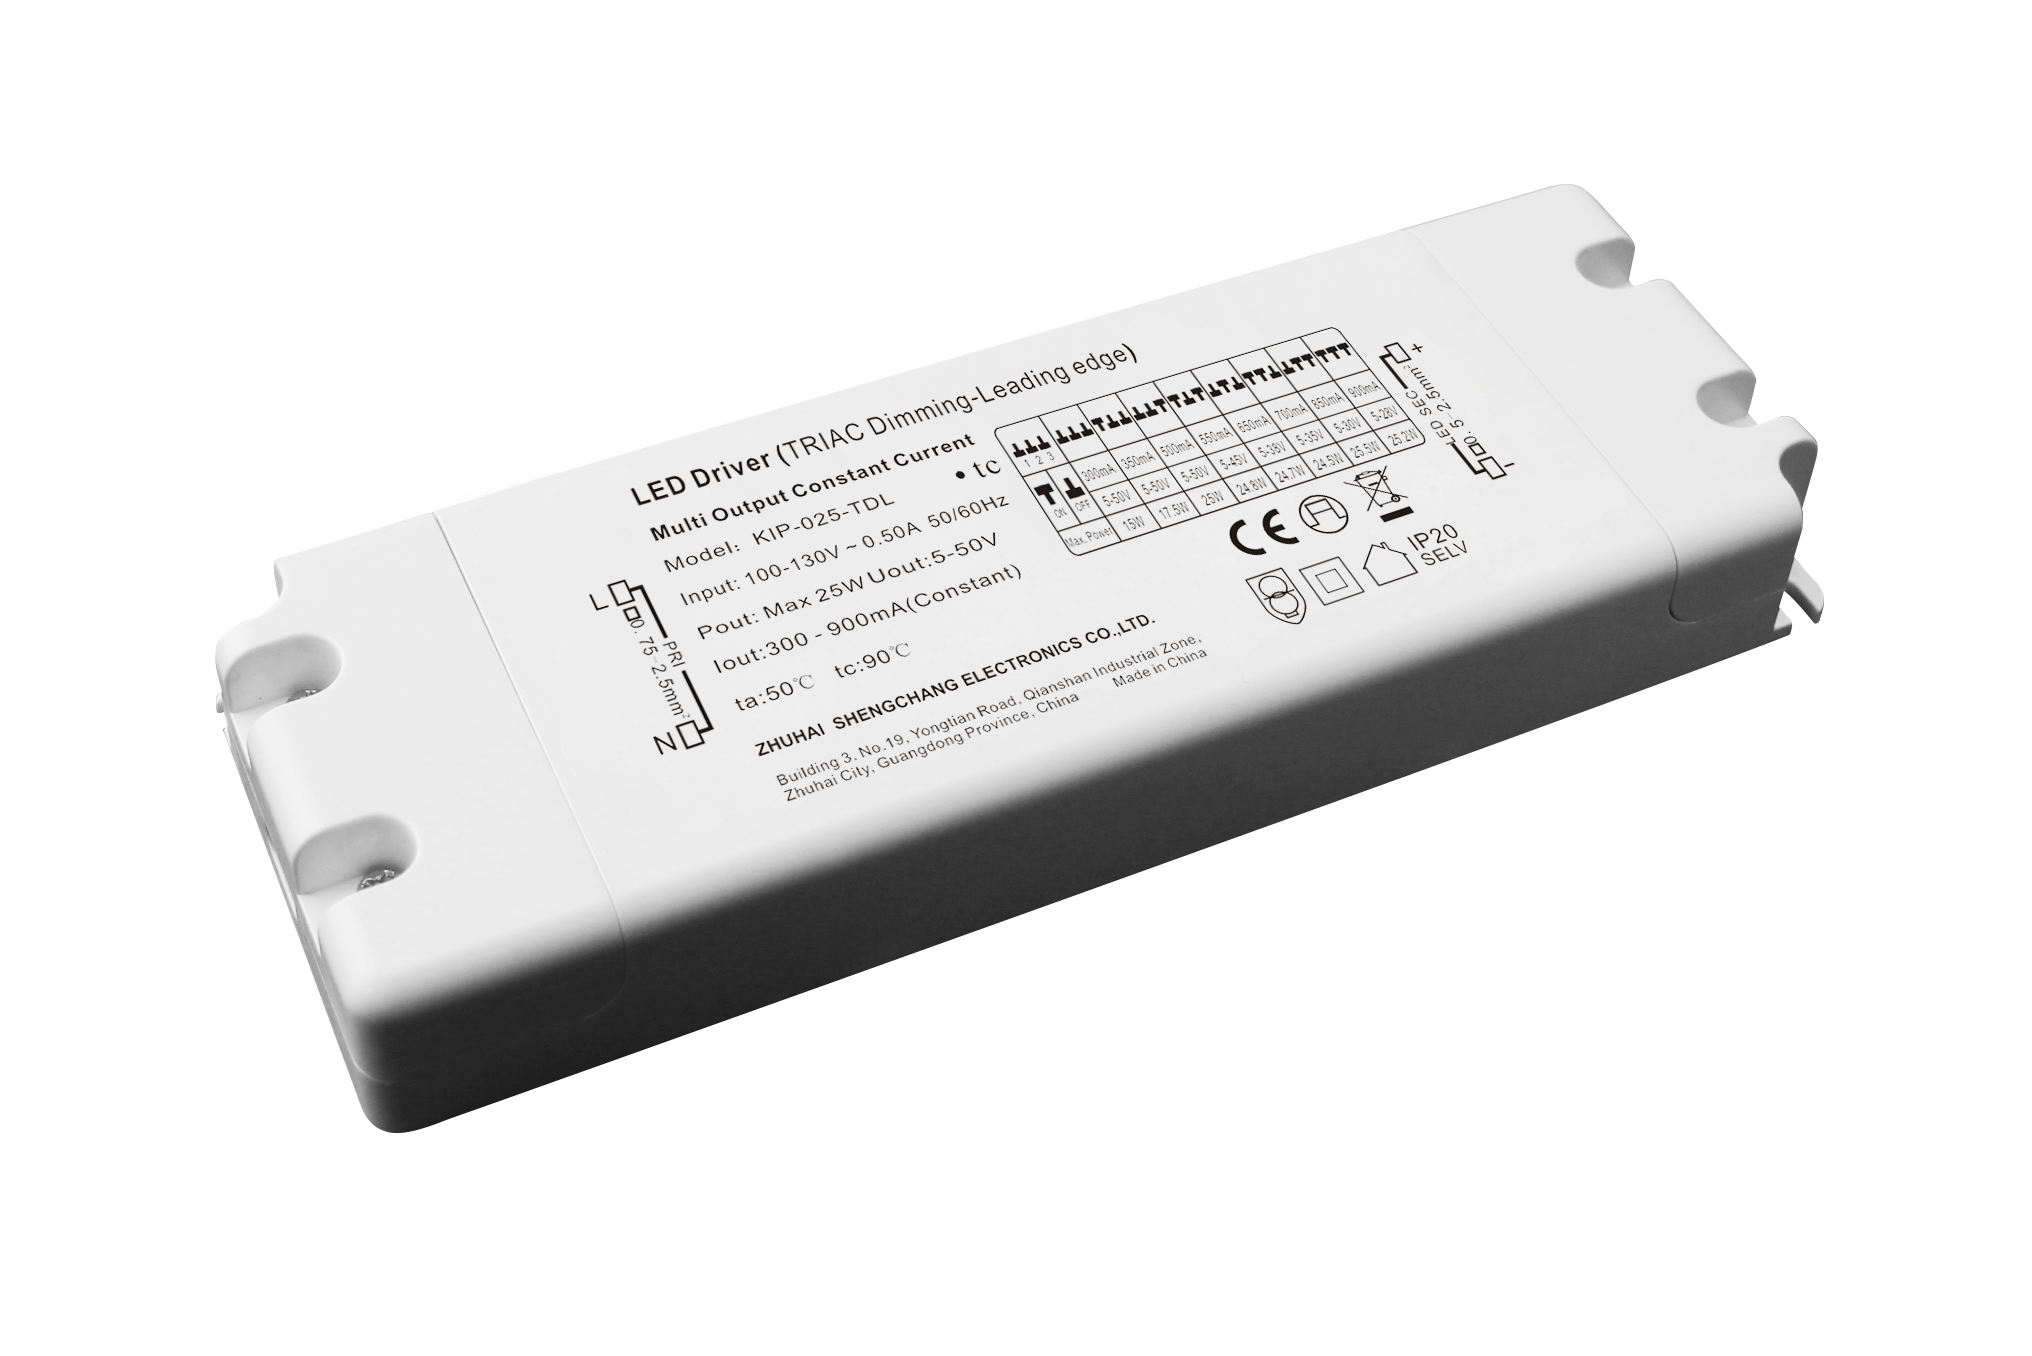 120VAC KIP series 25W multi-current triac dimmable driver